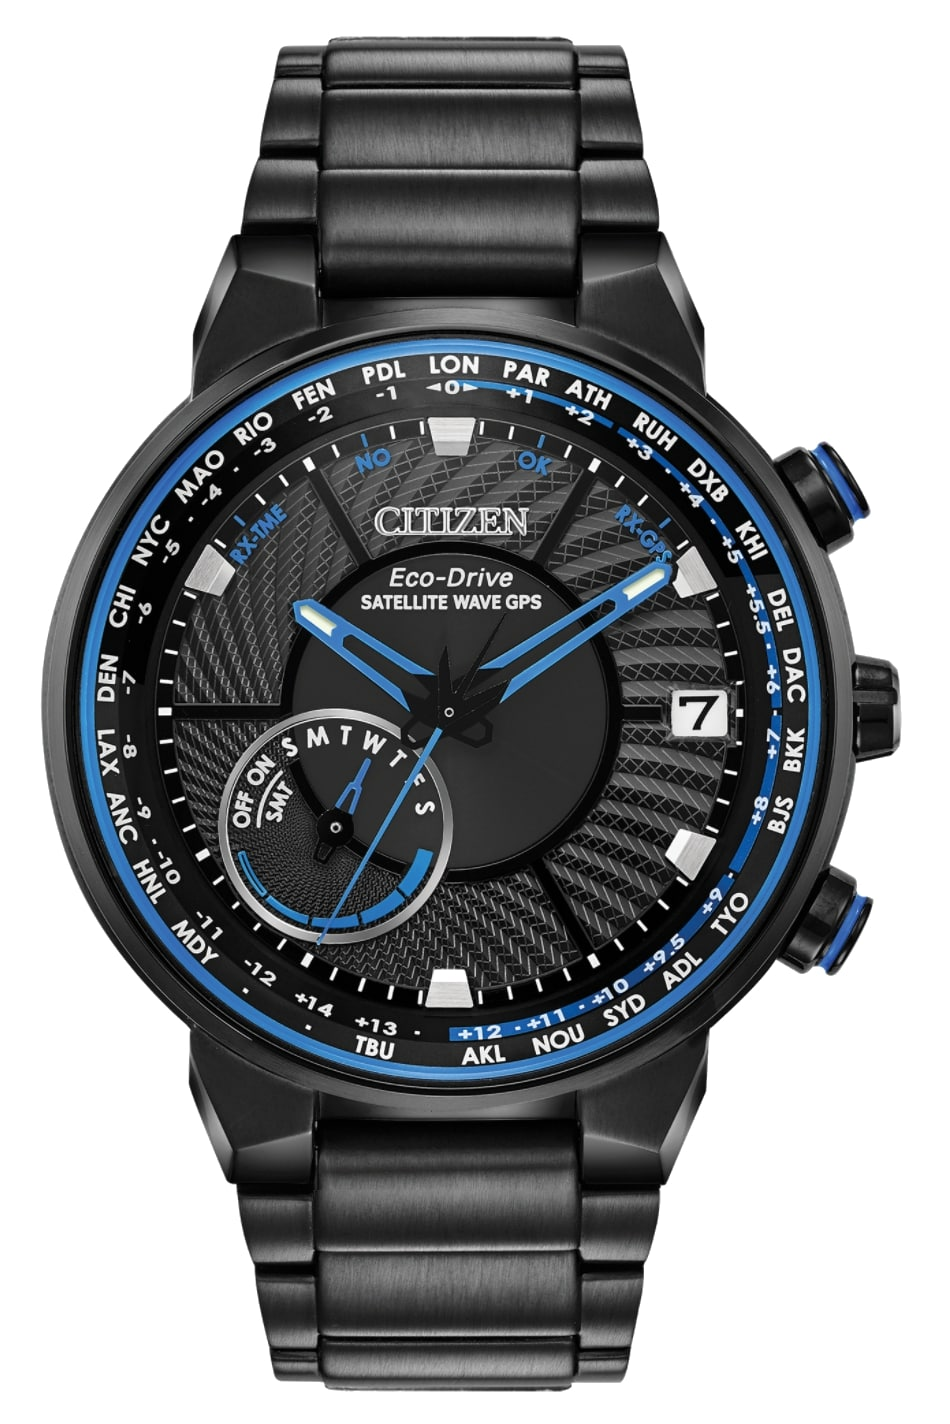 Citizen satellite wave watch